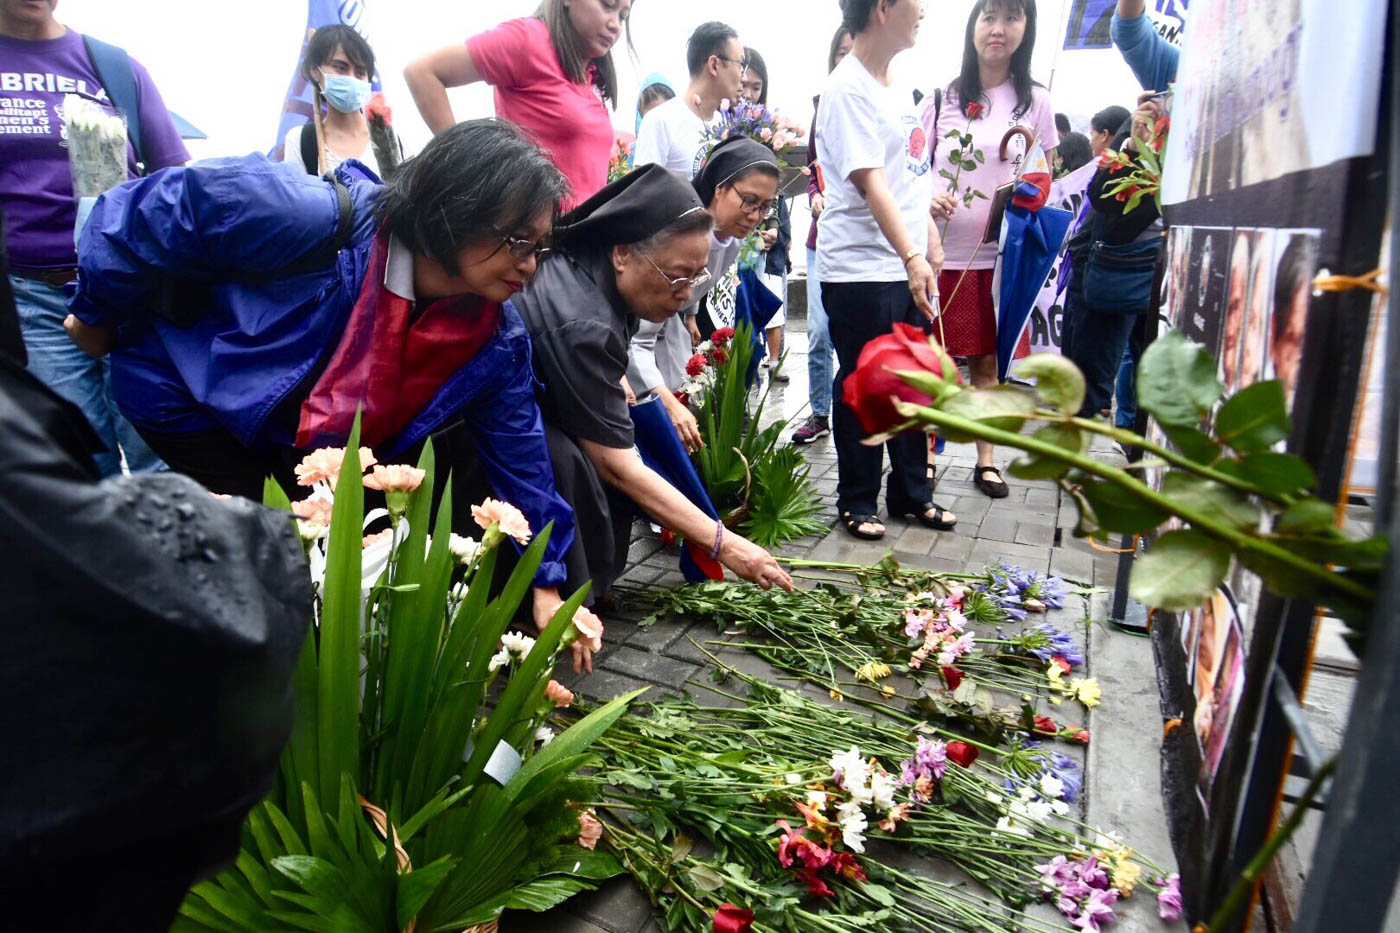 FLORAL OFFERING. Sister Mary John Mananzan (center) and others offer flowers at the former site of the comfort woman statue on June 12, 2018. Photo by Angie de Silva/Rappler